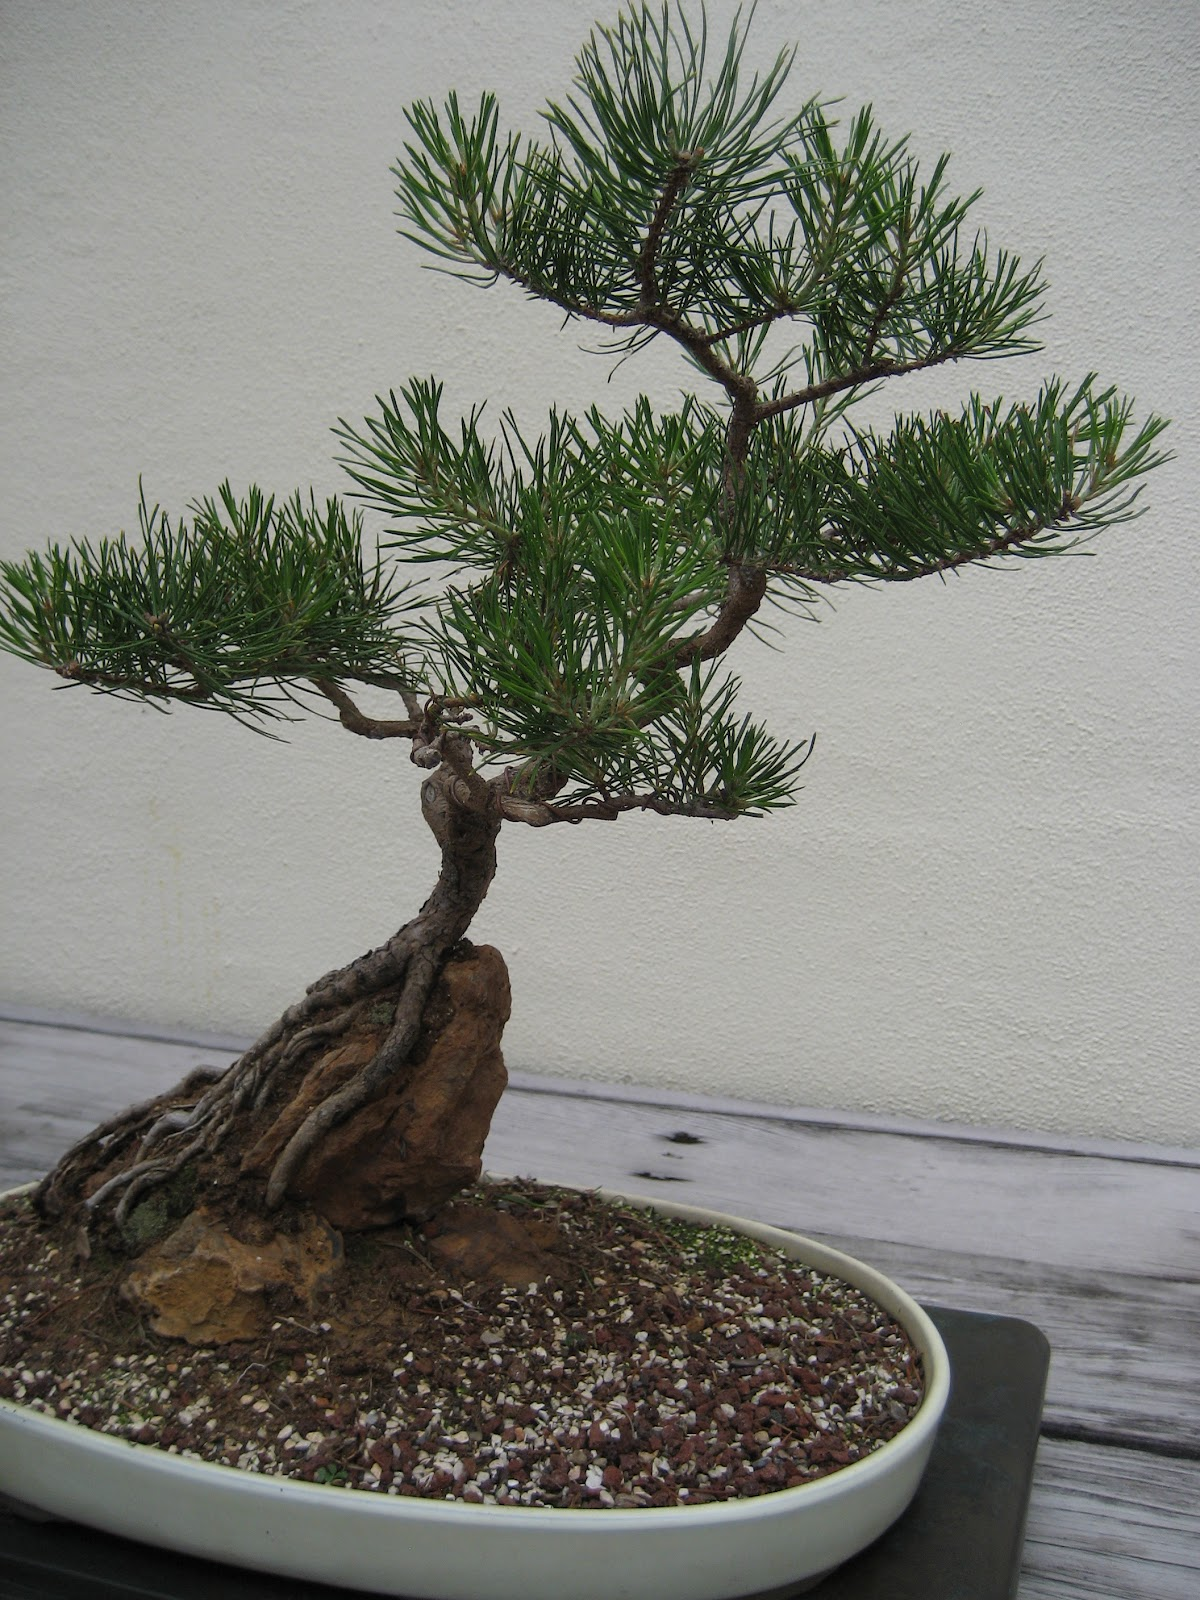 The Garden Aker Scrub Pine Bonsai